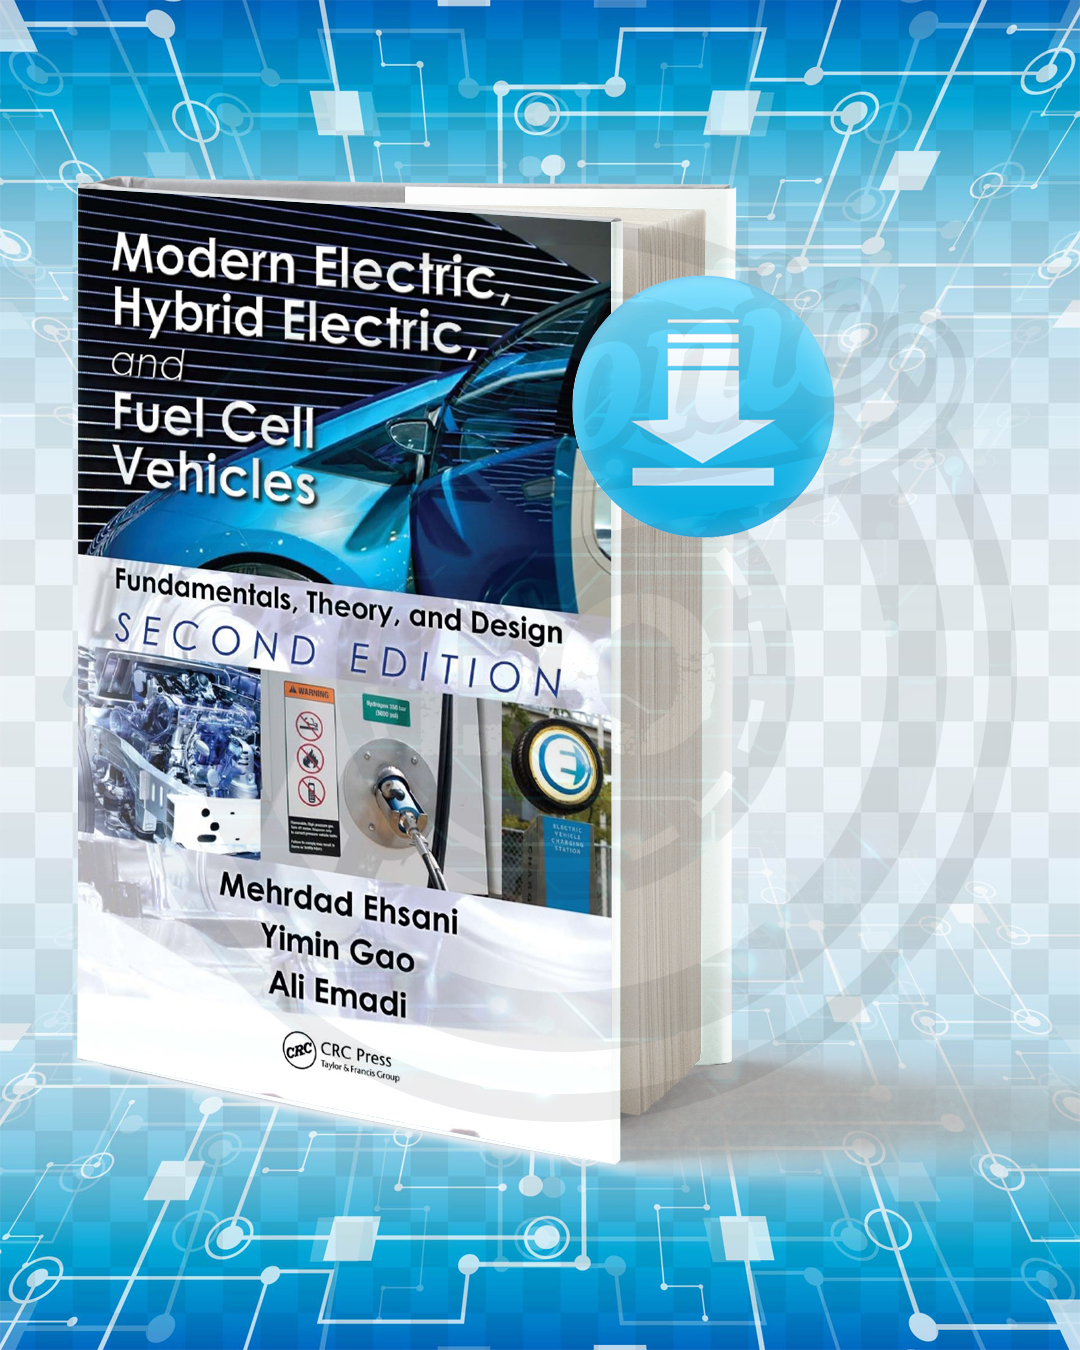 Free Book Modern Electric, Hybrid Electric, and Fuel Cell Vehicles pdf.